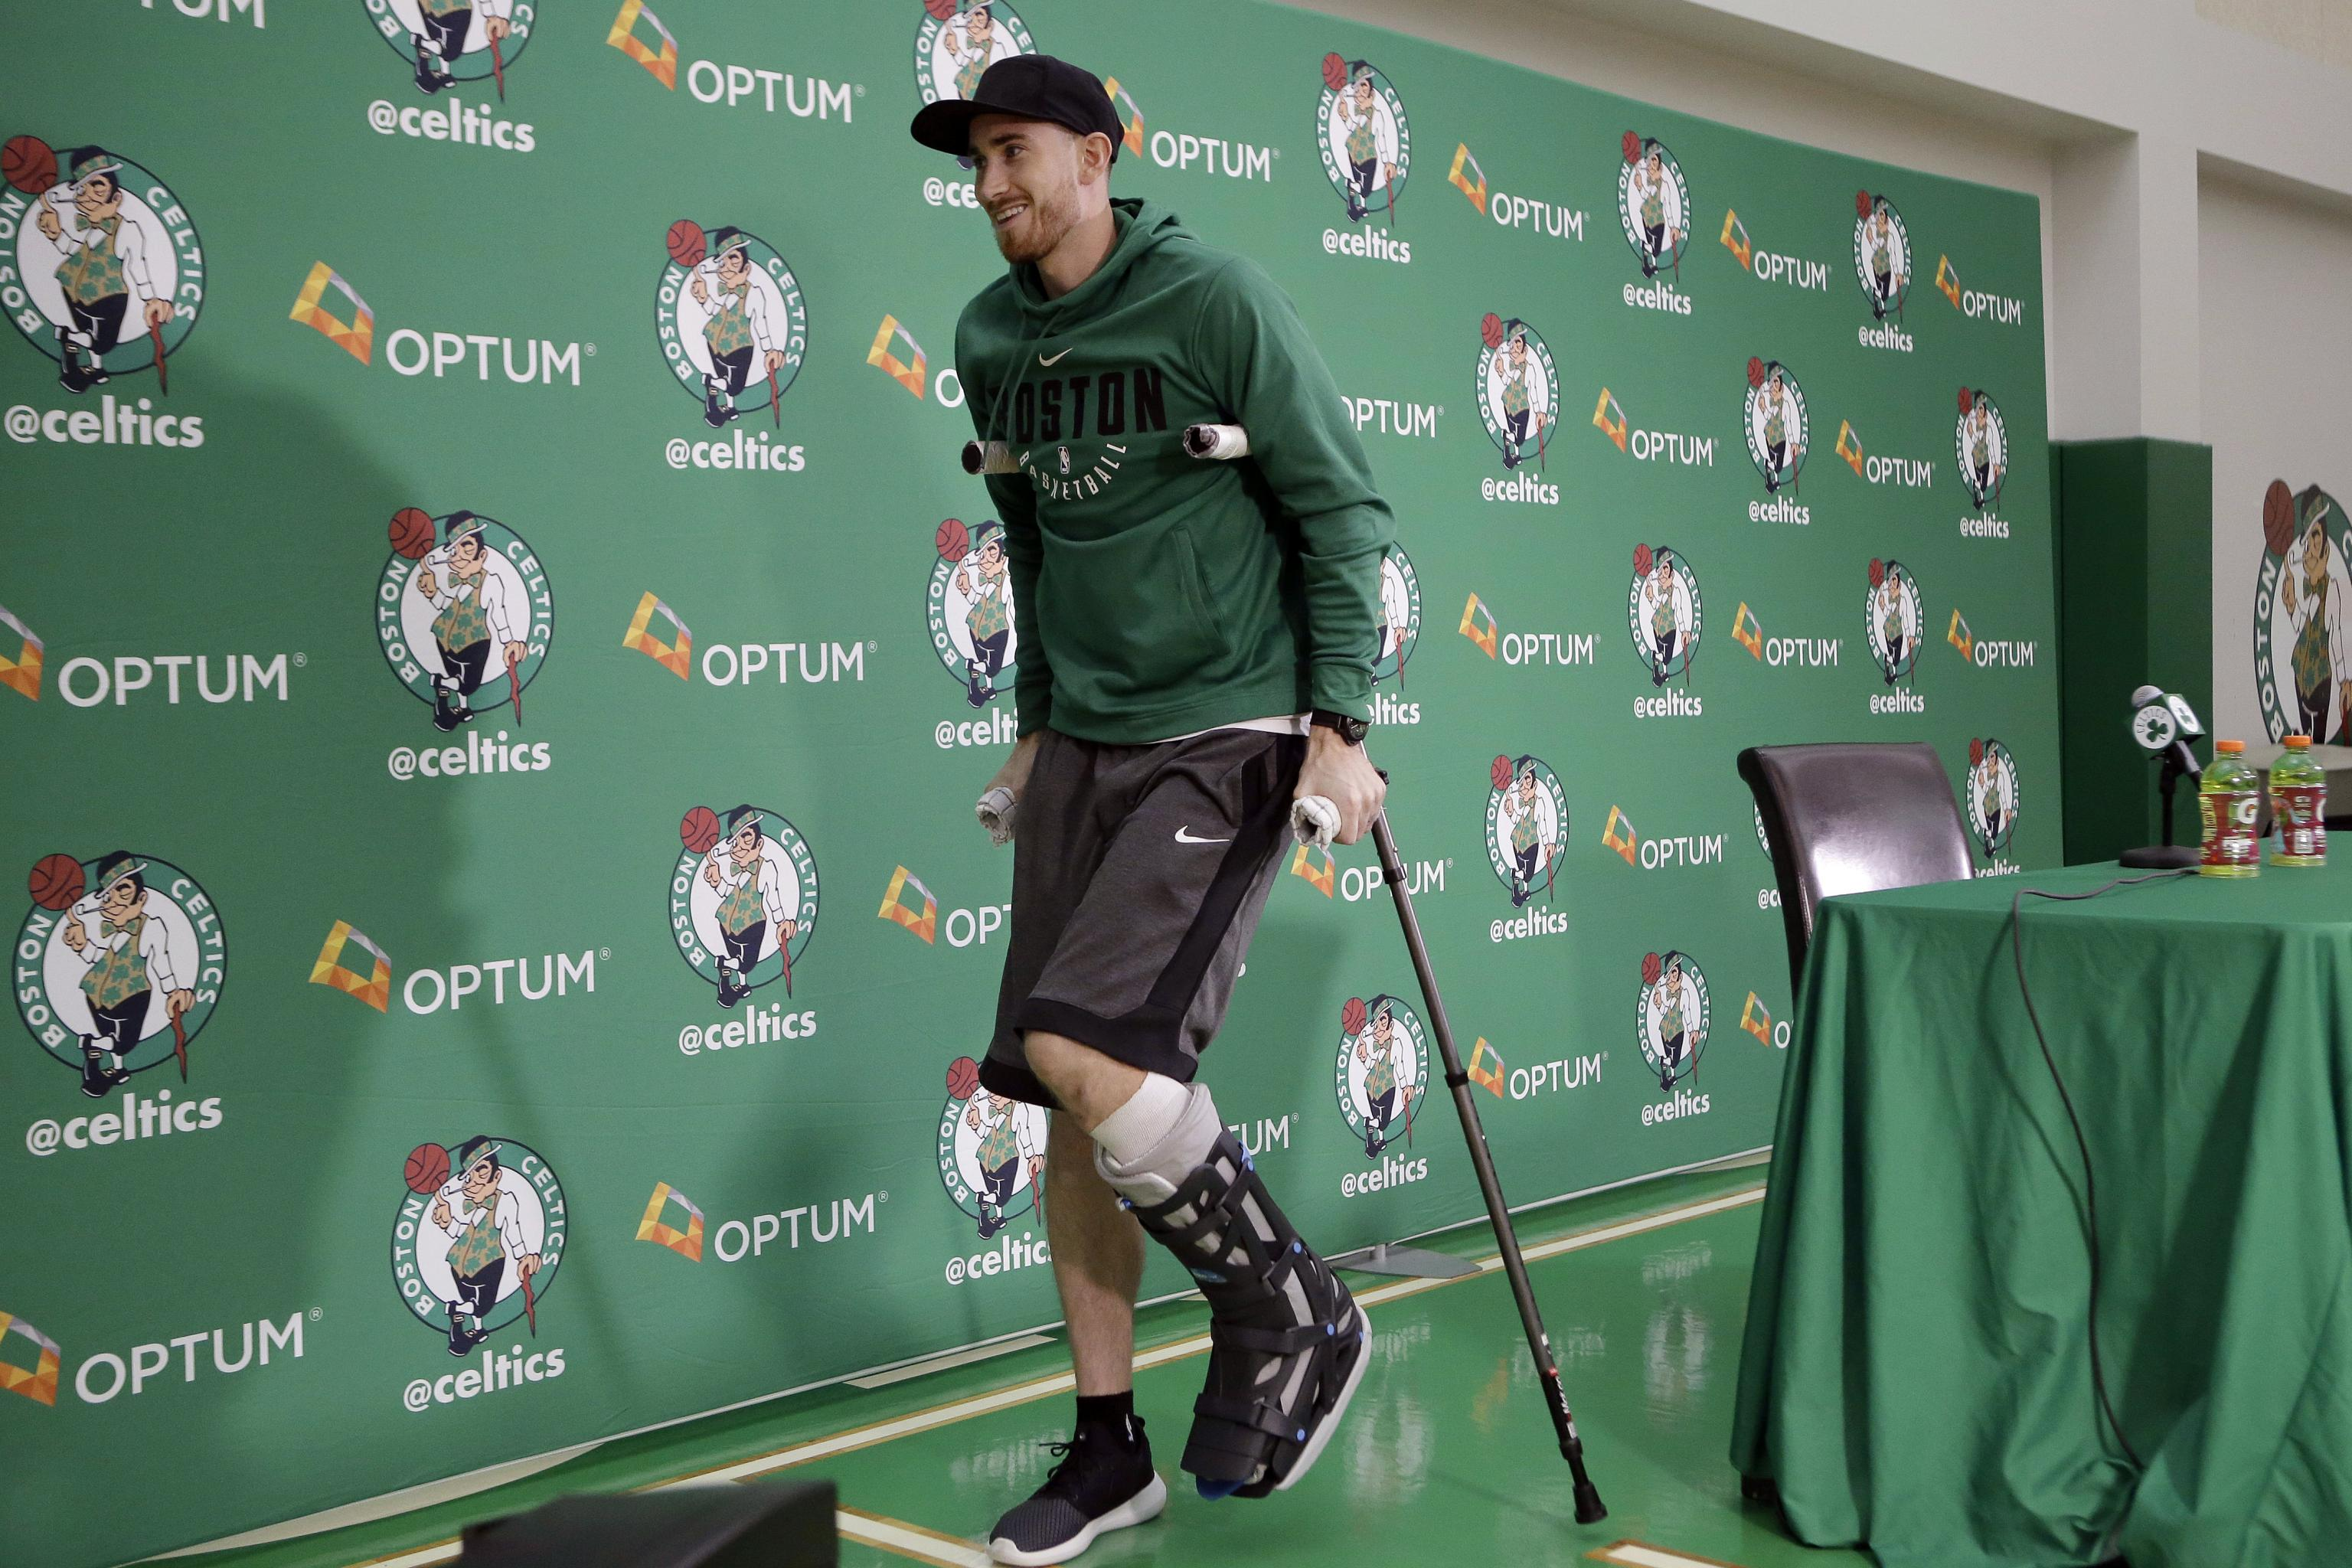 Gordon Hayward Has No Timetable For Return From Injury Per Danny Ainge Bleacher Report Latest News Videos And Highlights